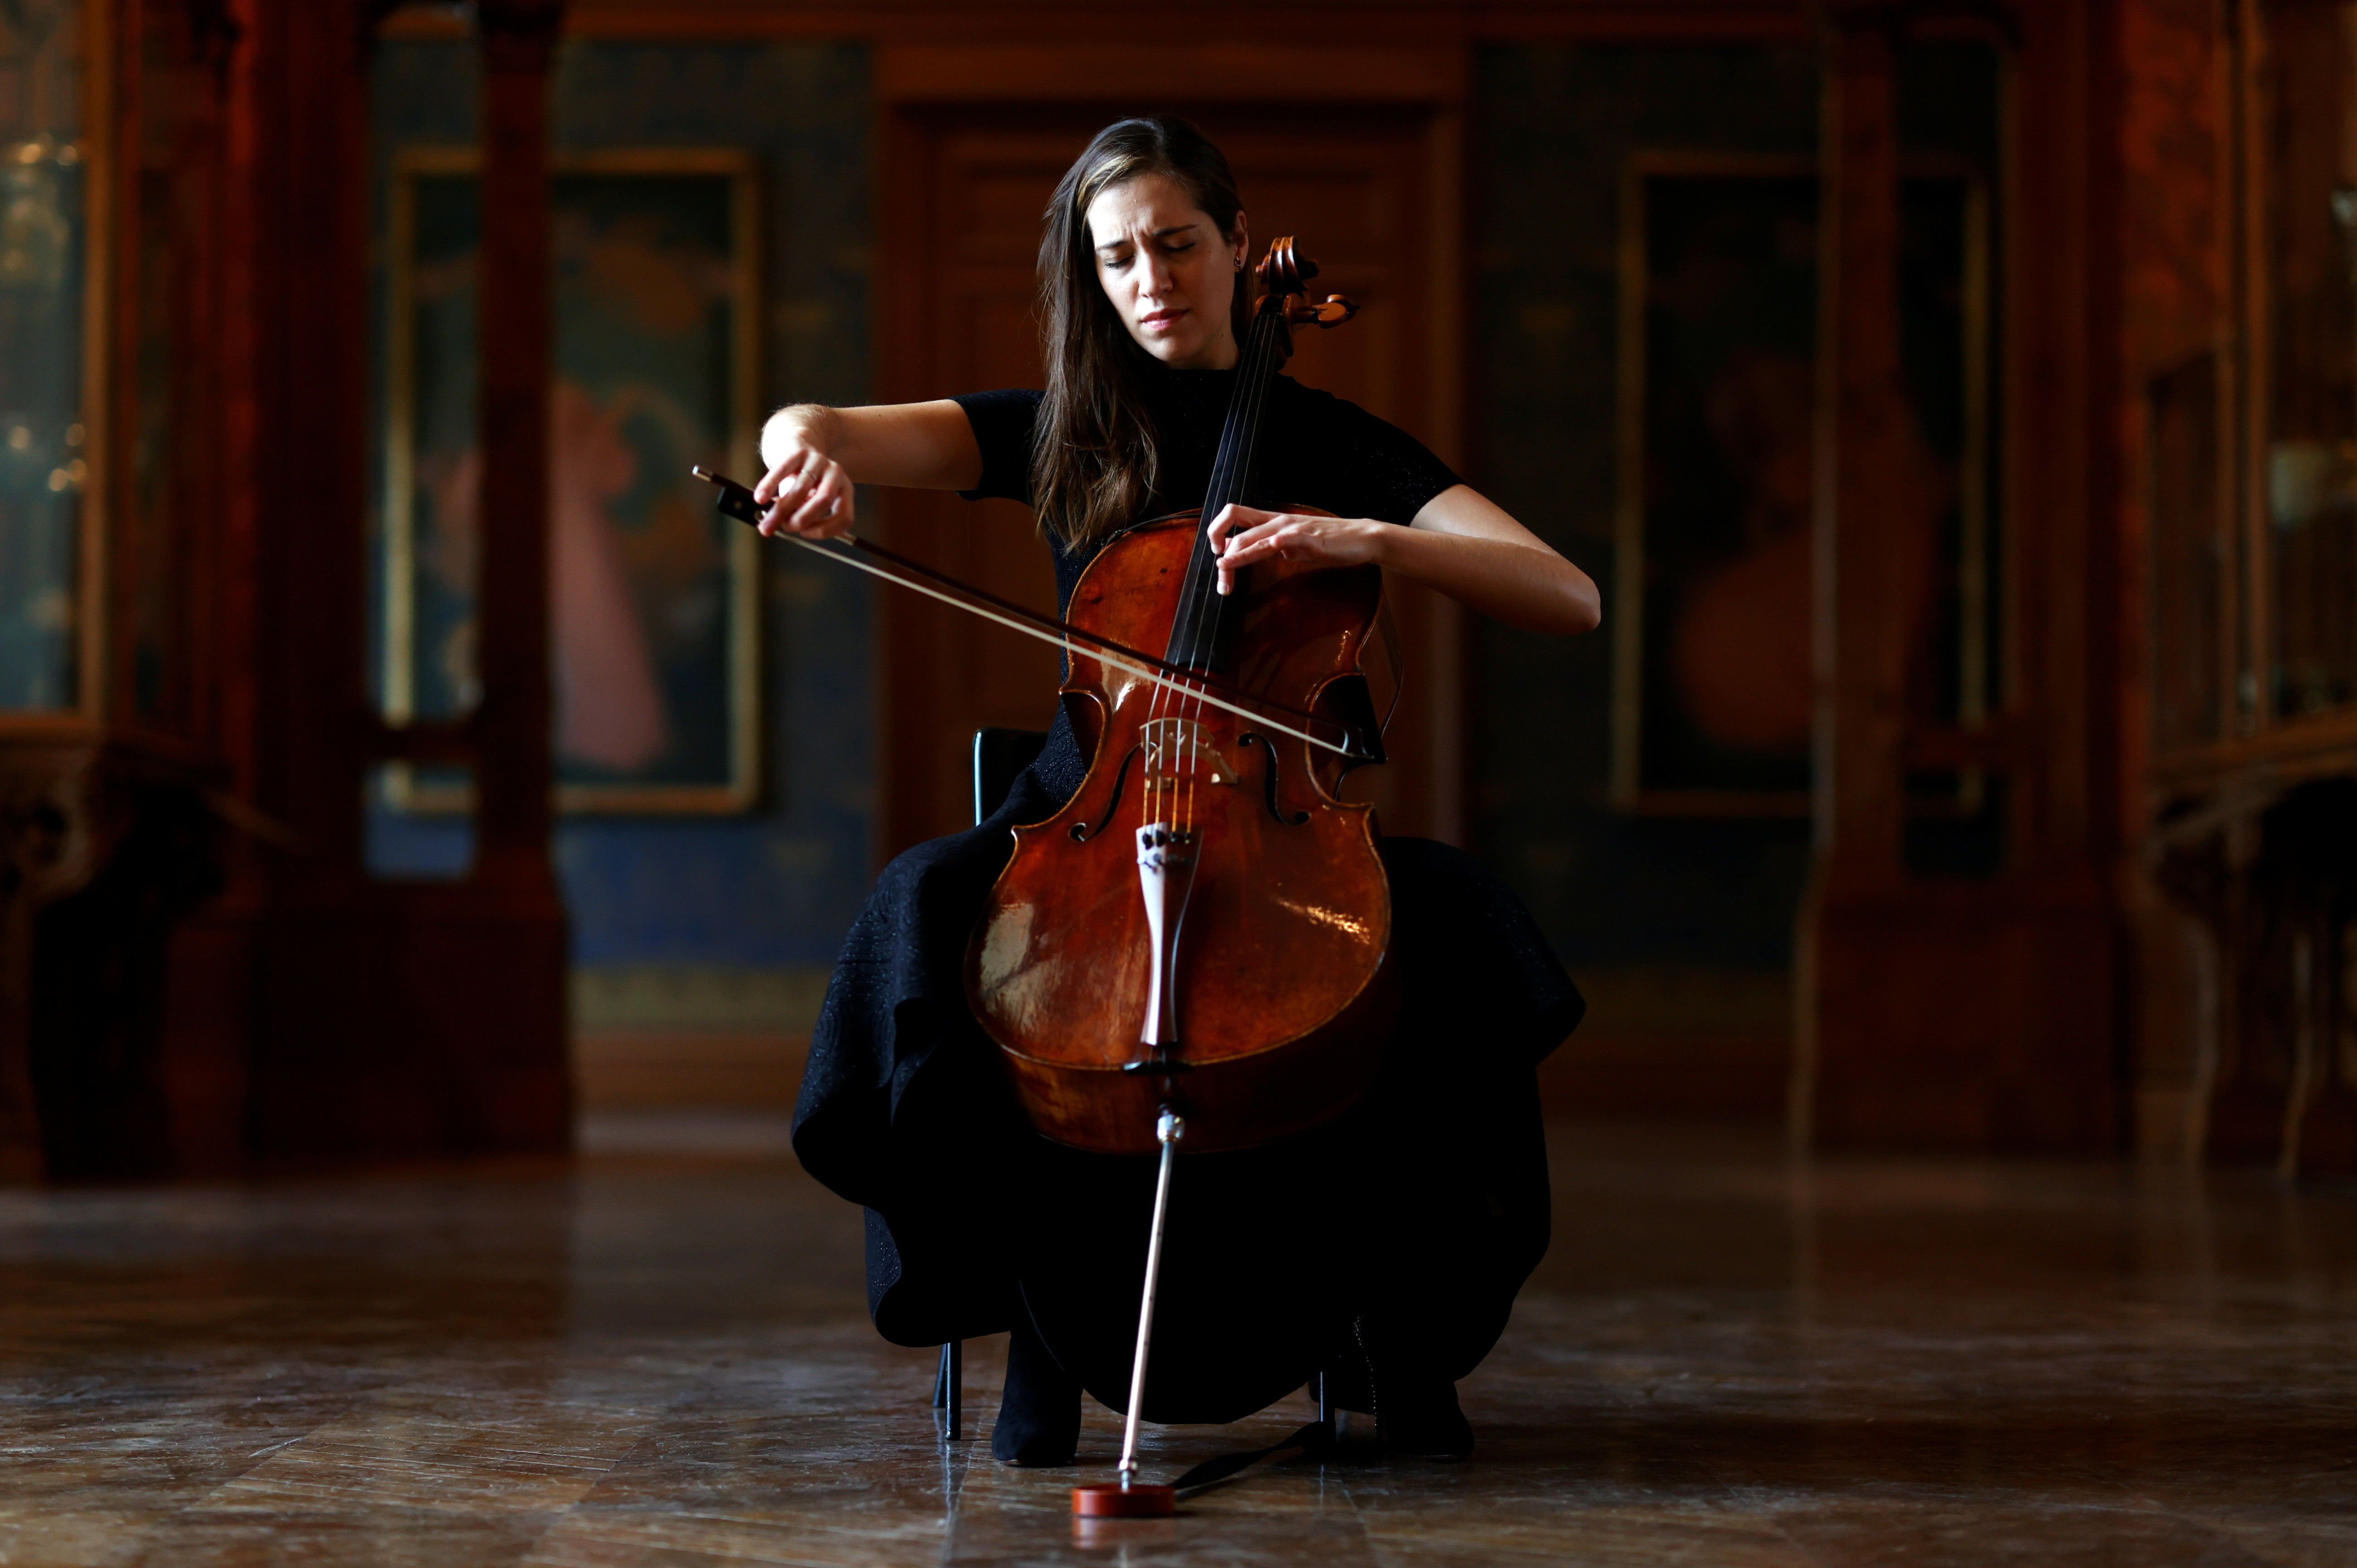 French-Belgian cellist Camille Thomas plays at the Musee des Arts Decoratifs, which is closed to visitors during the lockdown due to the spread of the coronavirus disease (COVID-19), in Paris, France, November 26, 2020. Picture taken November 26, 2020.   REUTERS/Christian Hartmann - RC2NBK9JCXV3